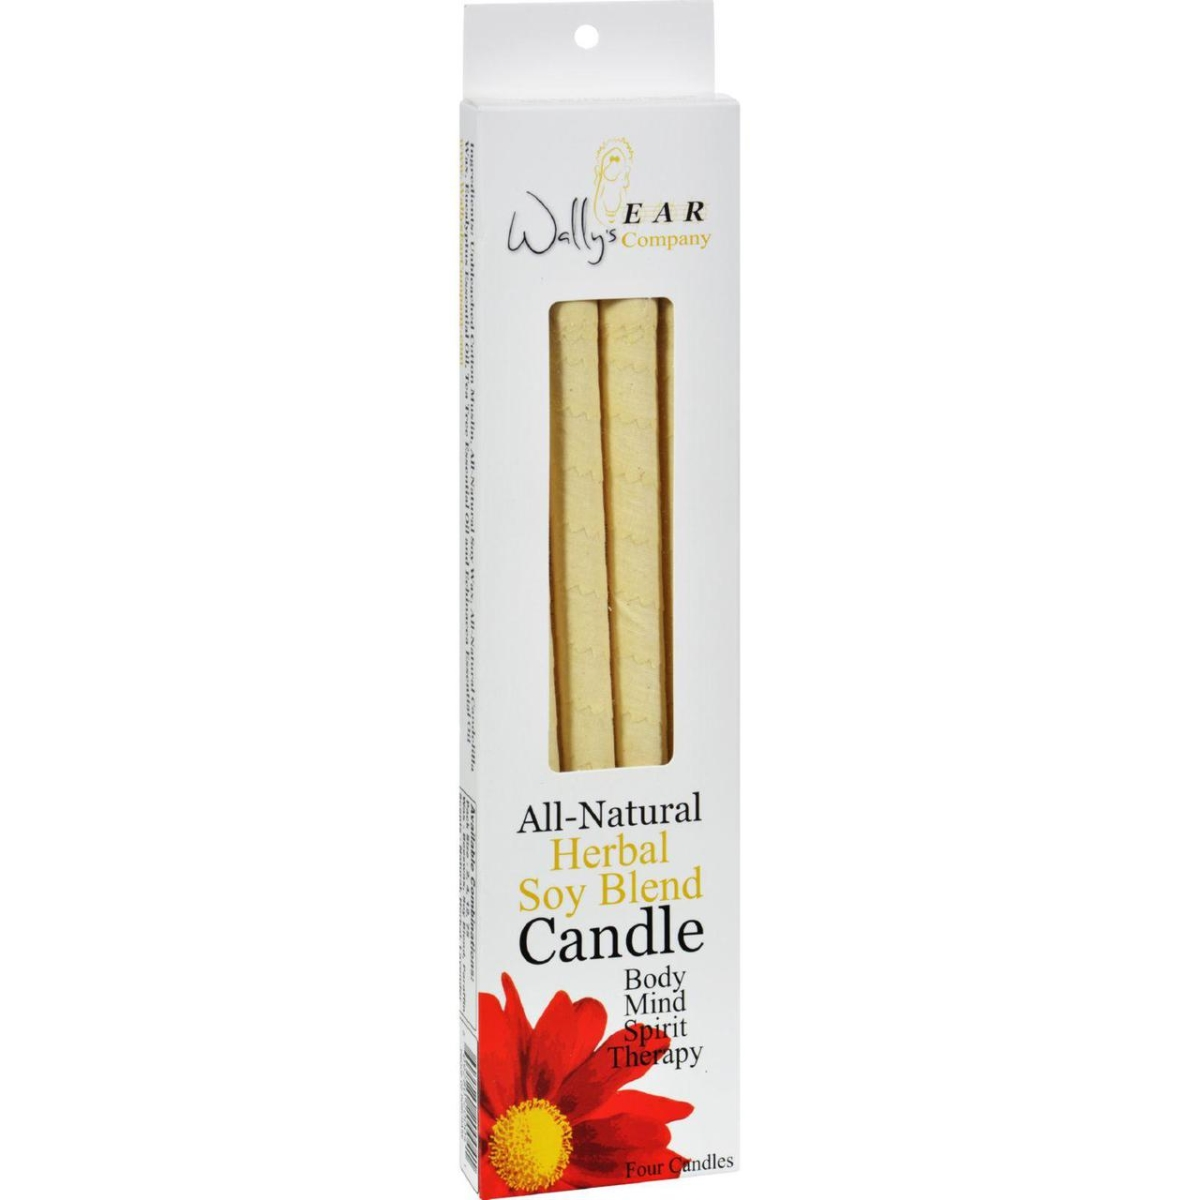 Wallys Natural Products HG0115923 Herbal Paraffin Ear Candle - Pack of 4